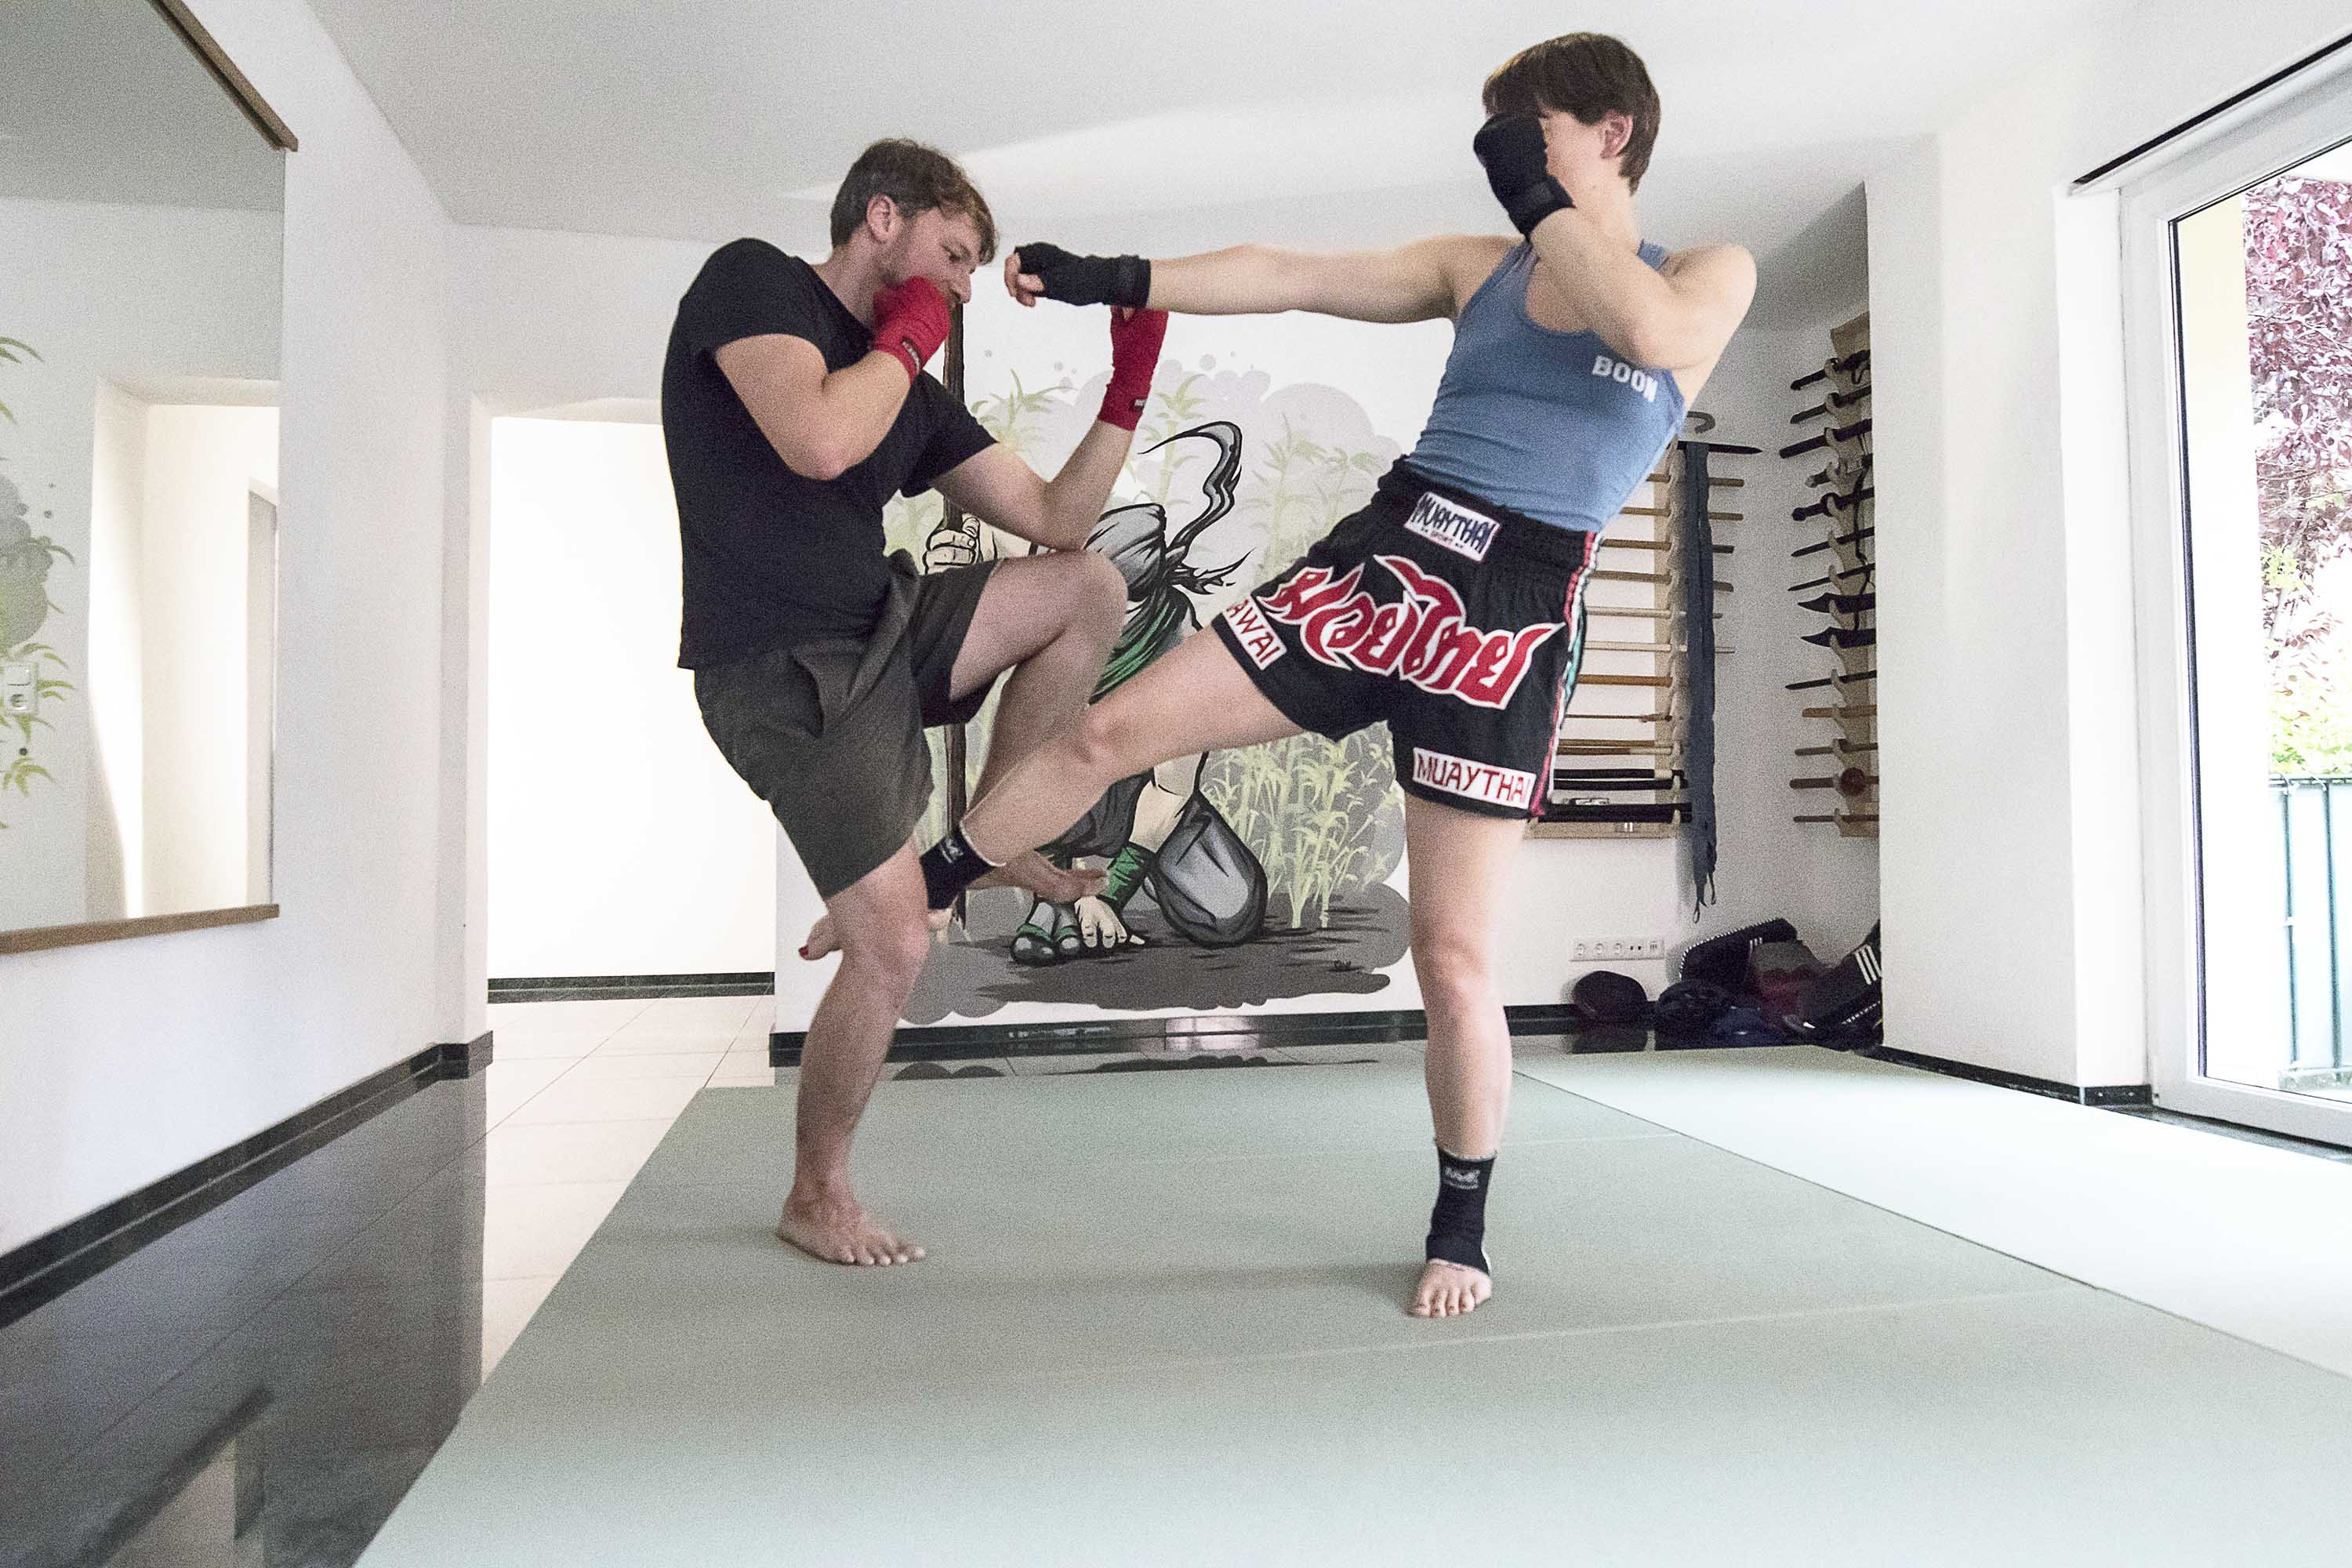 RONIN_DOJO_Traditionelles_thaiboxen_Training_12